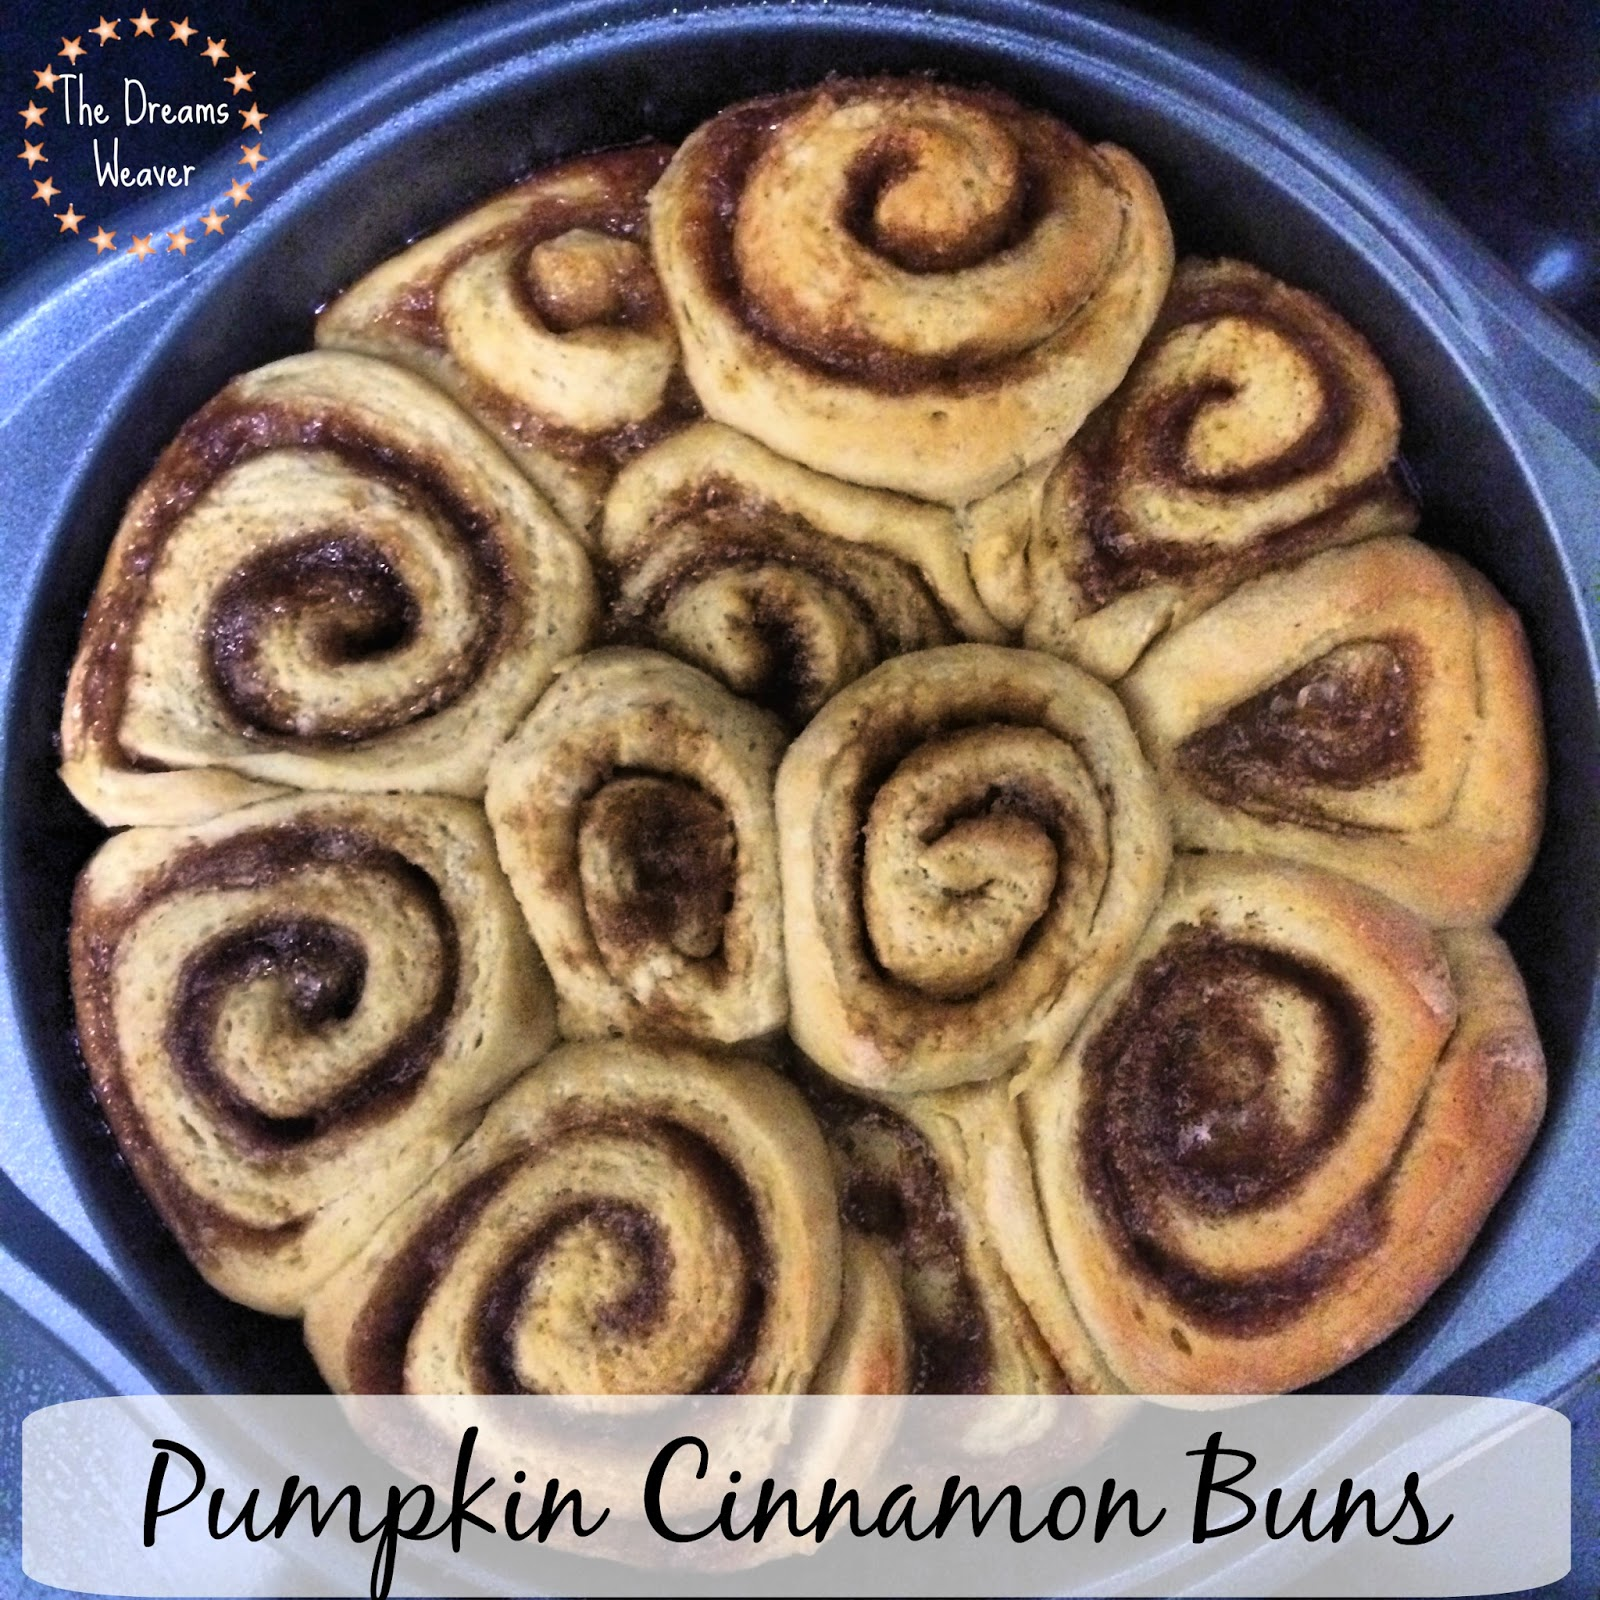 Pumpkin Cinnamon Buns~ The Dreams Weaver